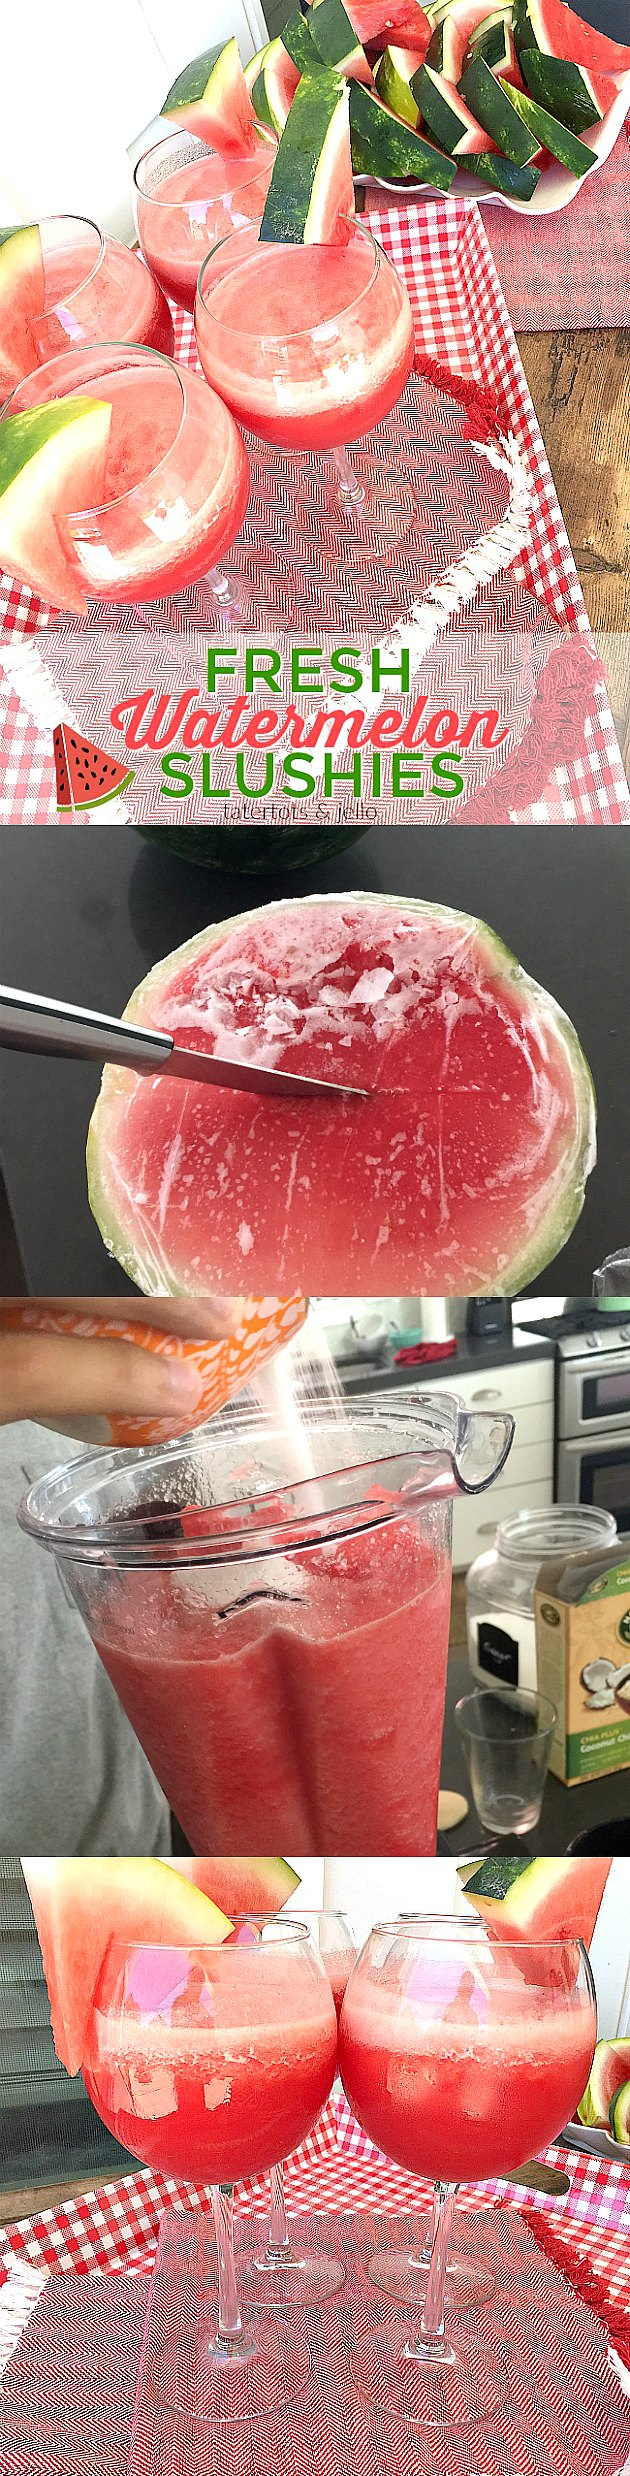 Make your Summer awesome by making Fresh Watermelon Slushies! Pop your watermelon in the freezer and get ready for a watermelon sensation. Perfect for any Summer party!